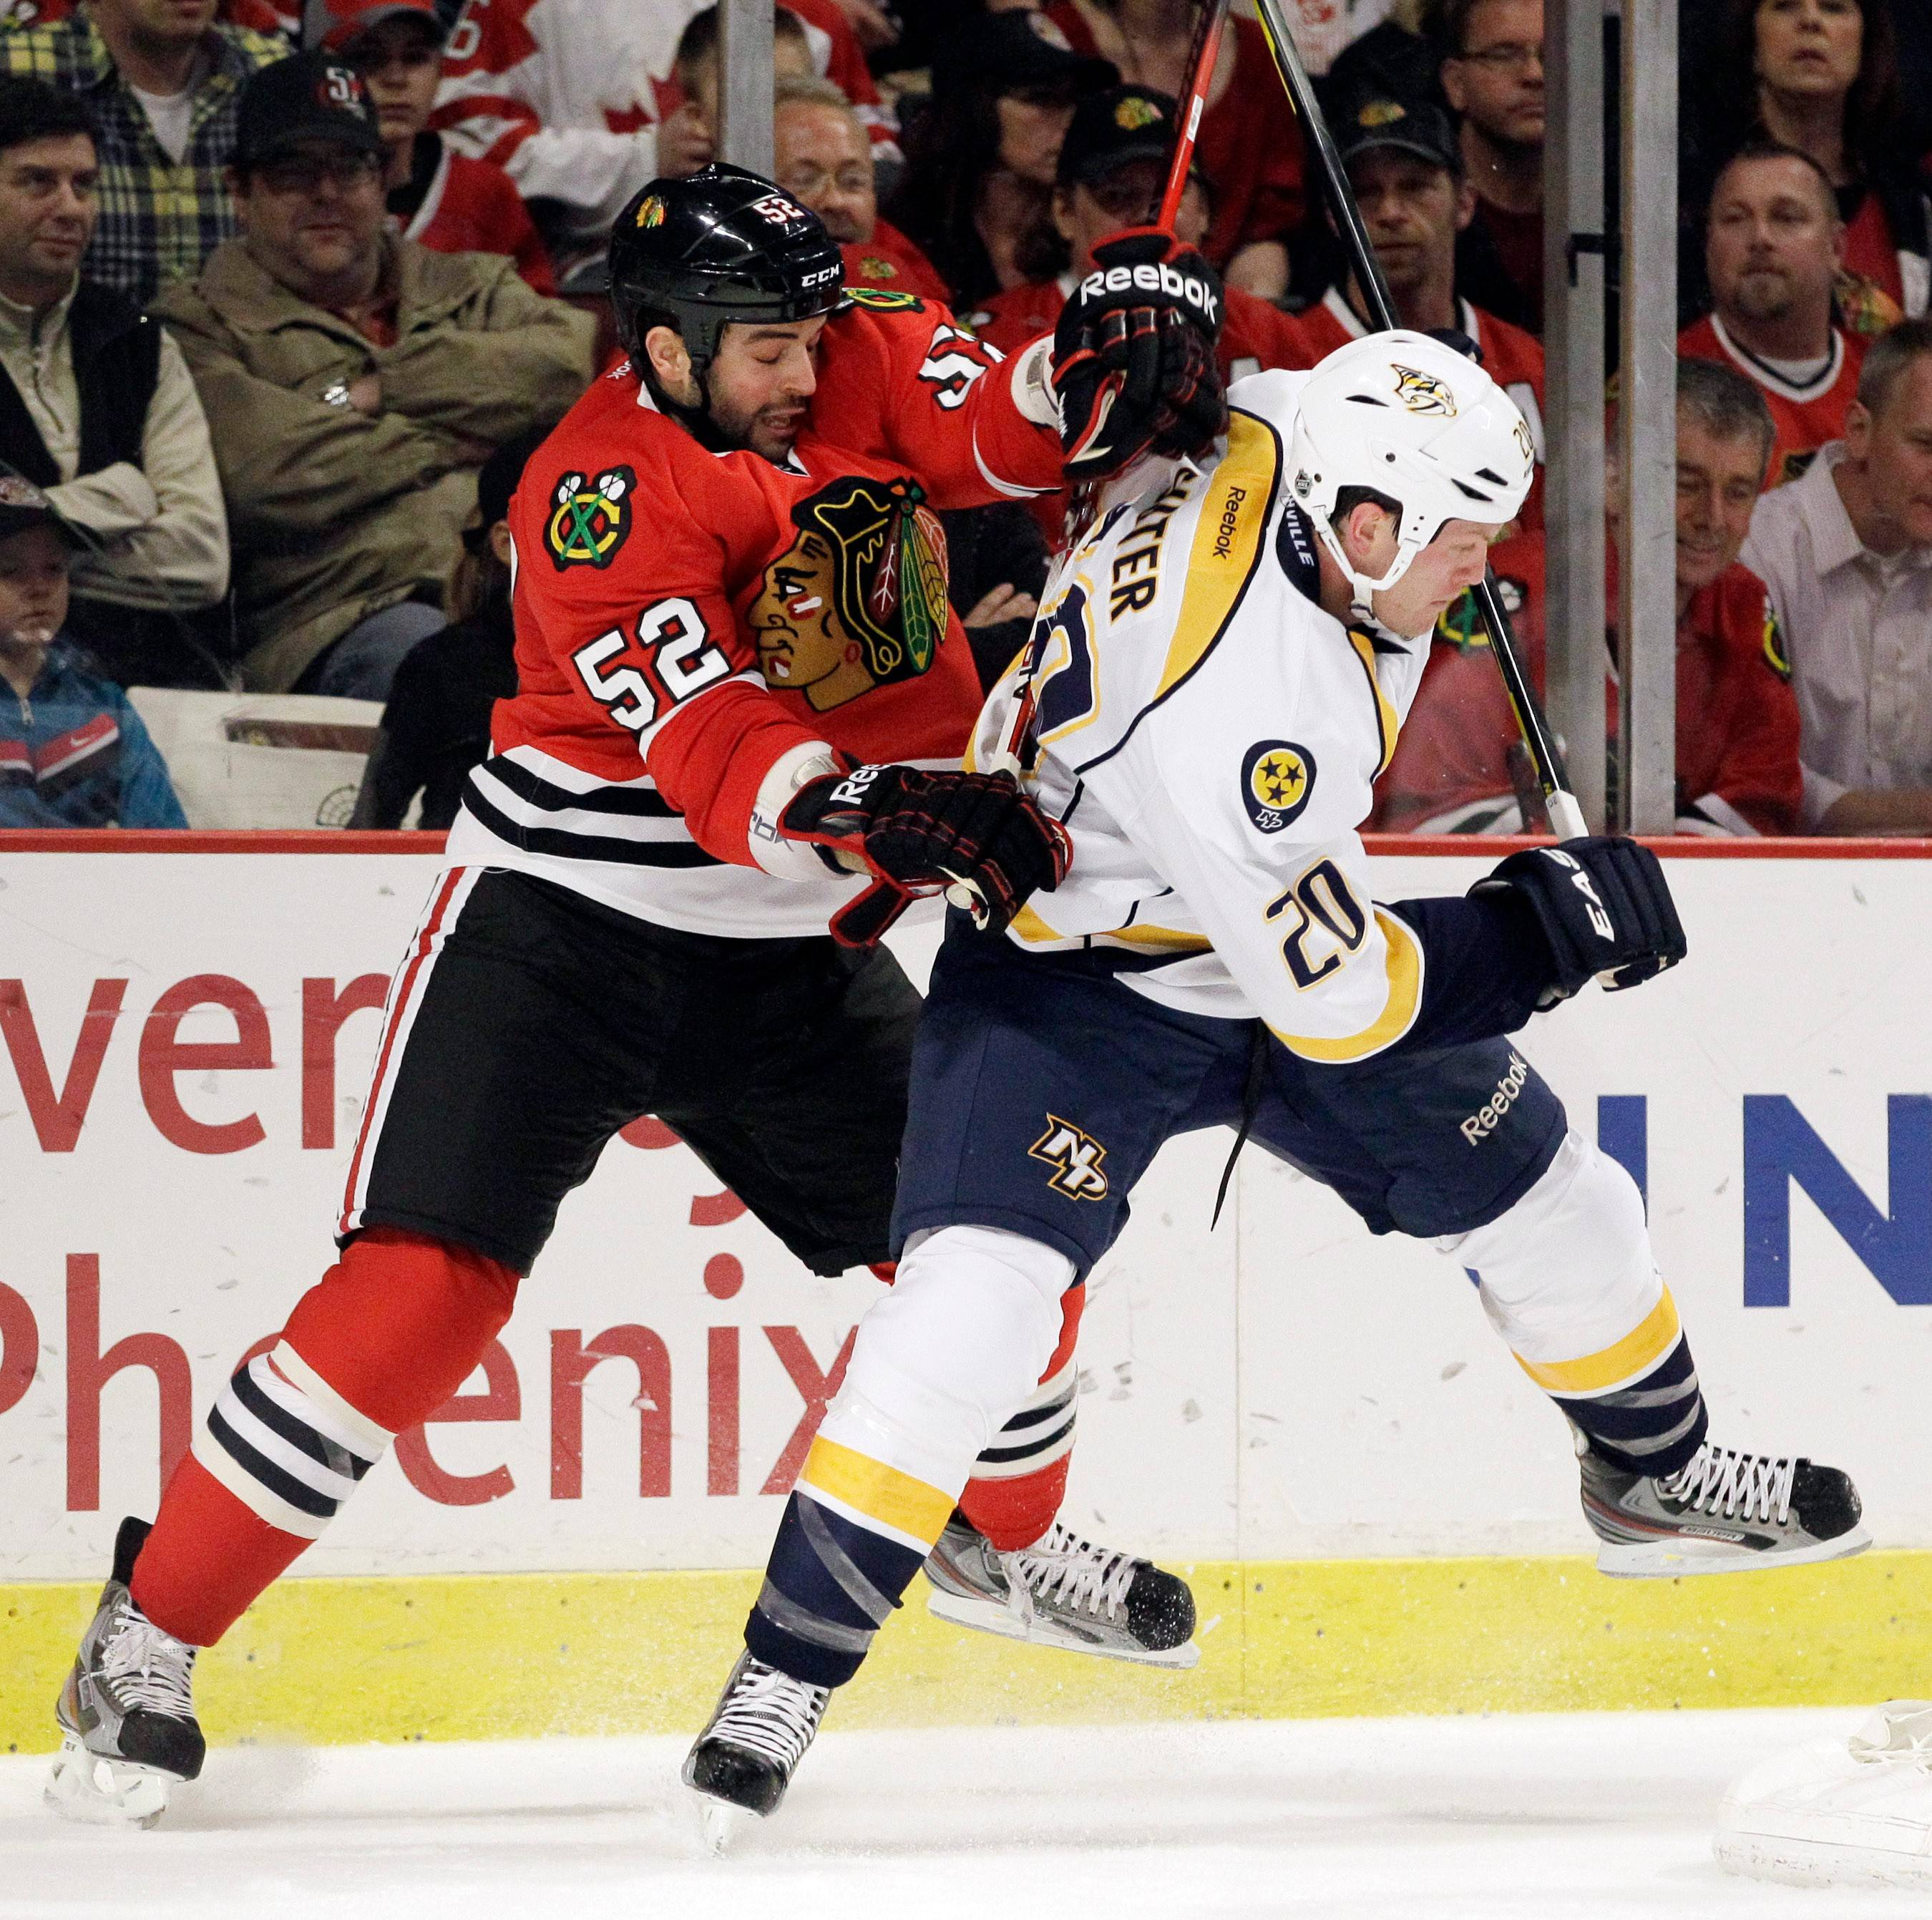 Blackhawks forward Brandon Bollig is checked by the Nashville Predators' Ryan Suter last season. The Blackhawks and Bollig agreed to a three-year contract extension Monday.